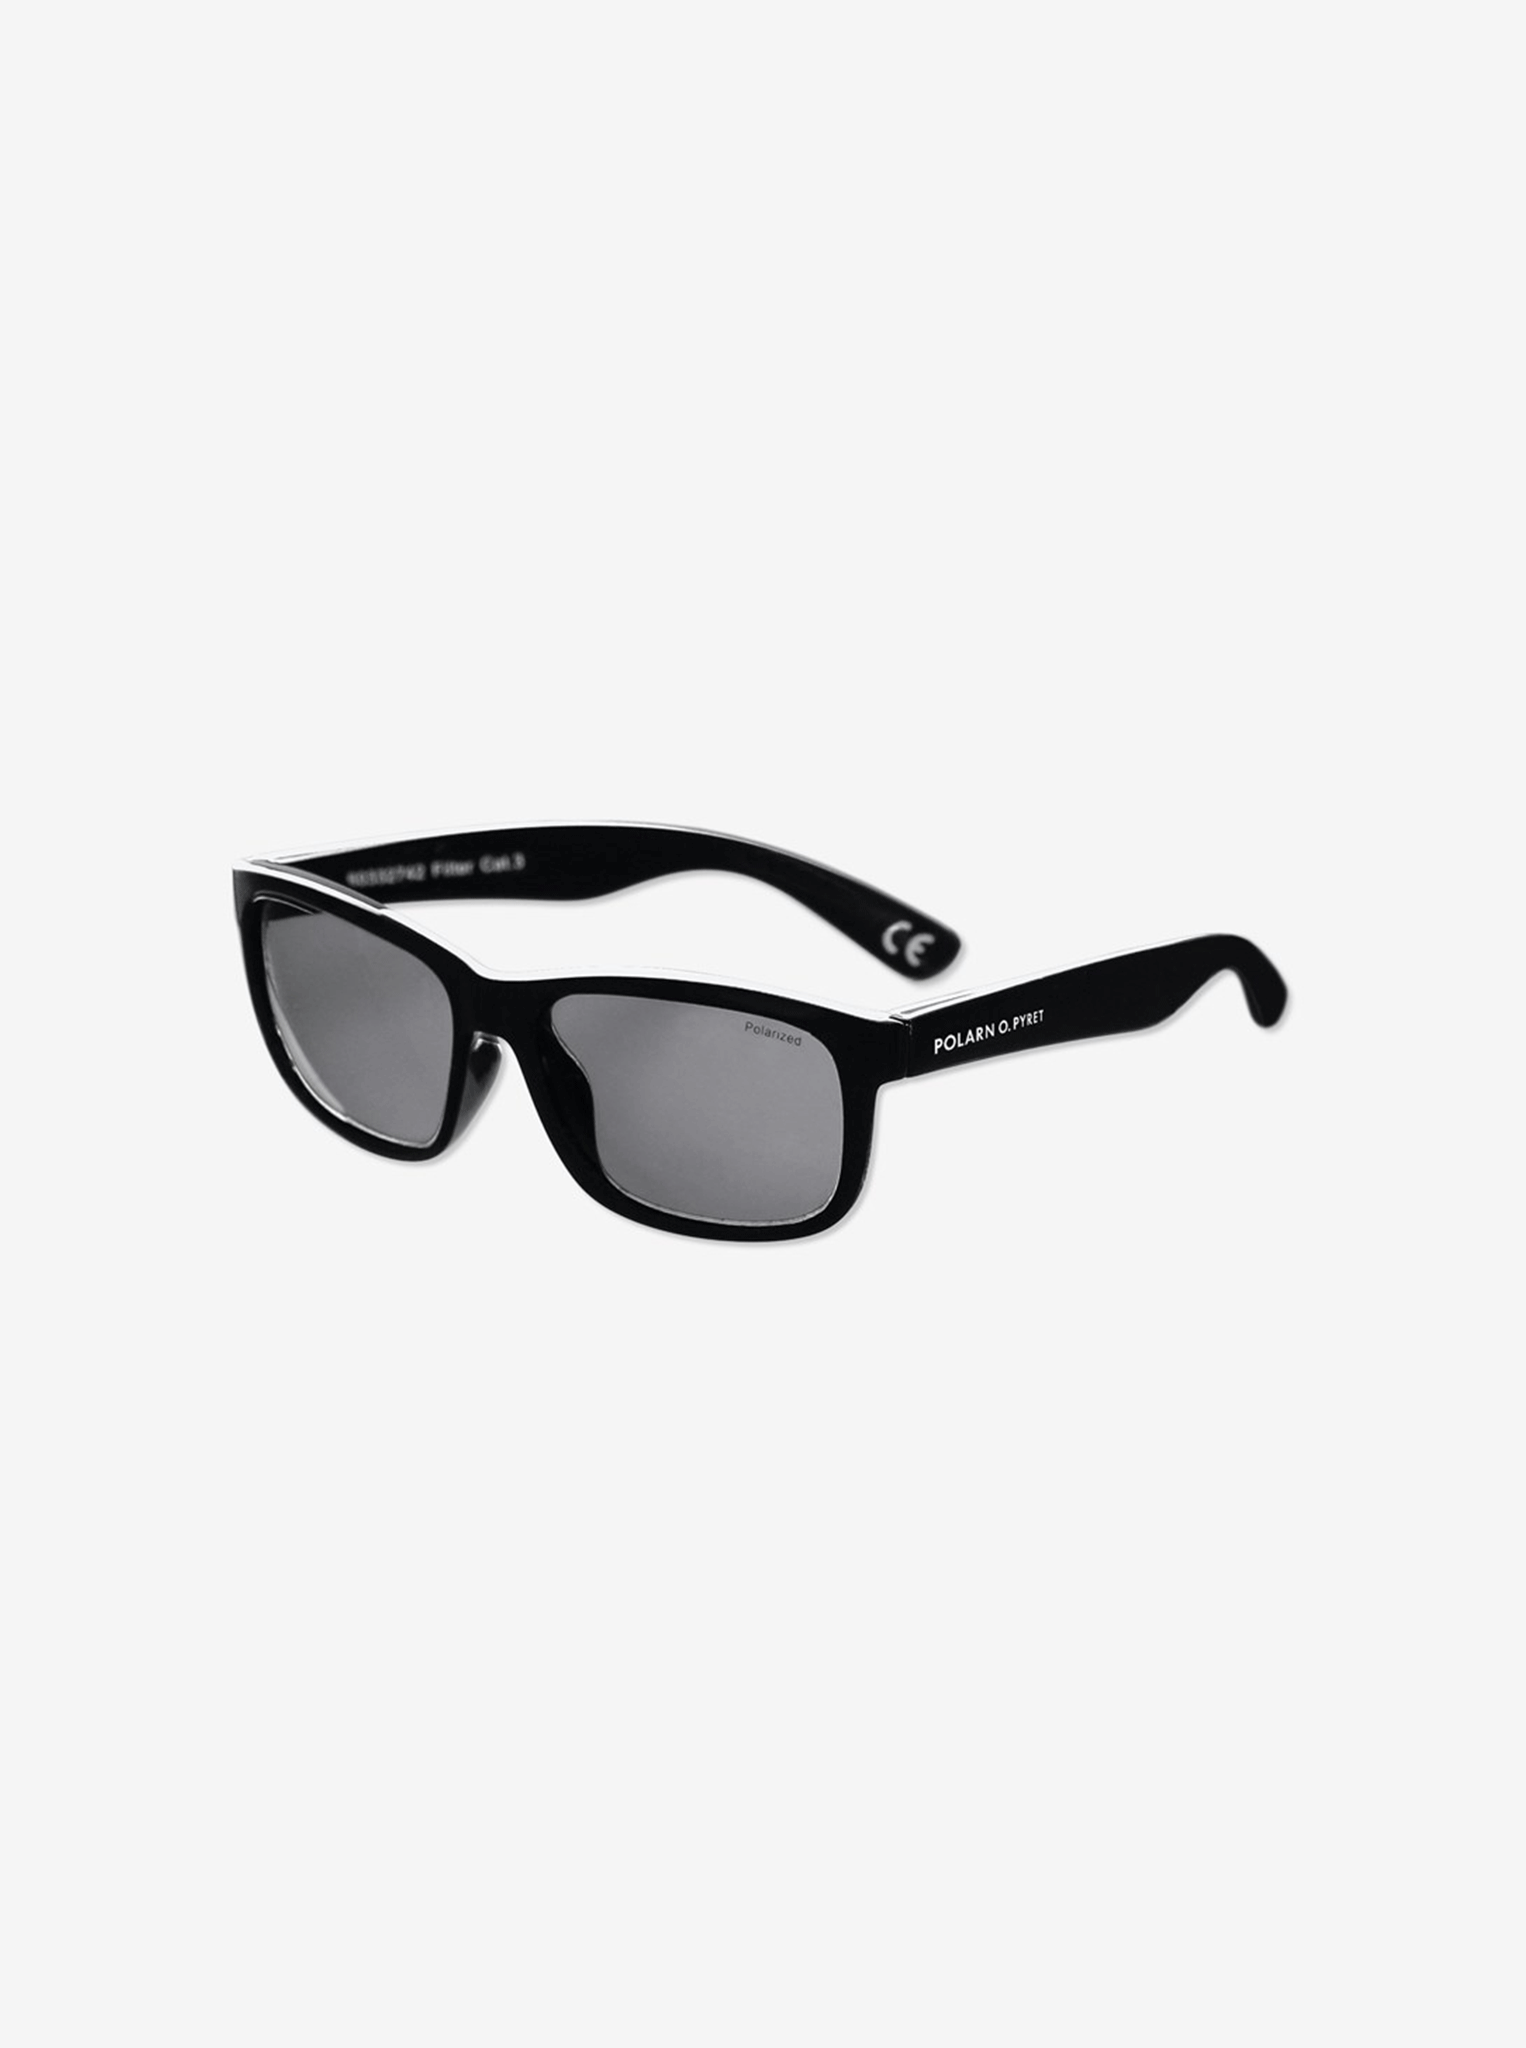 Kids UV Polarized Sunglasses 2-6Y+---Black---Unisex---One Size